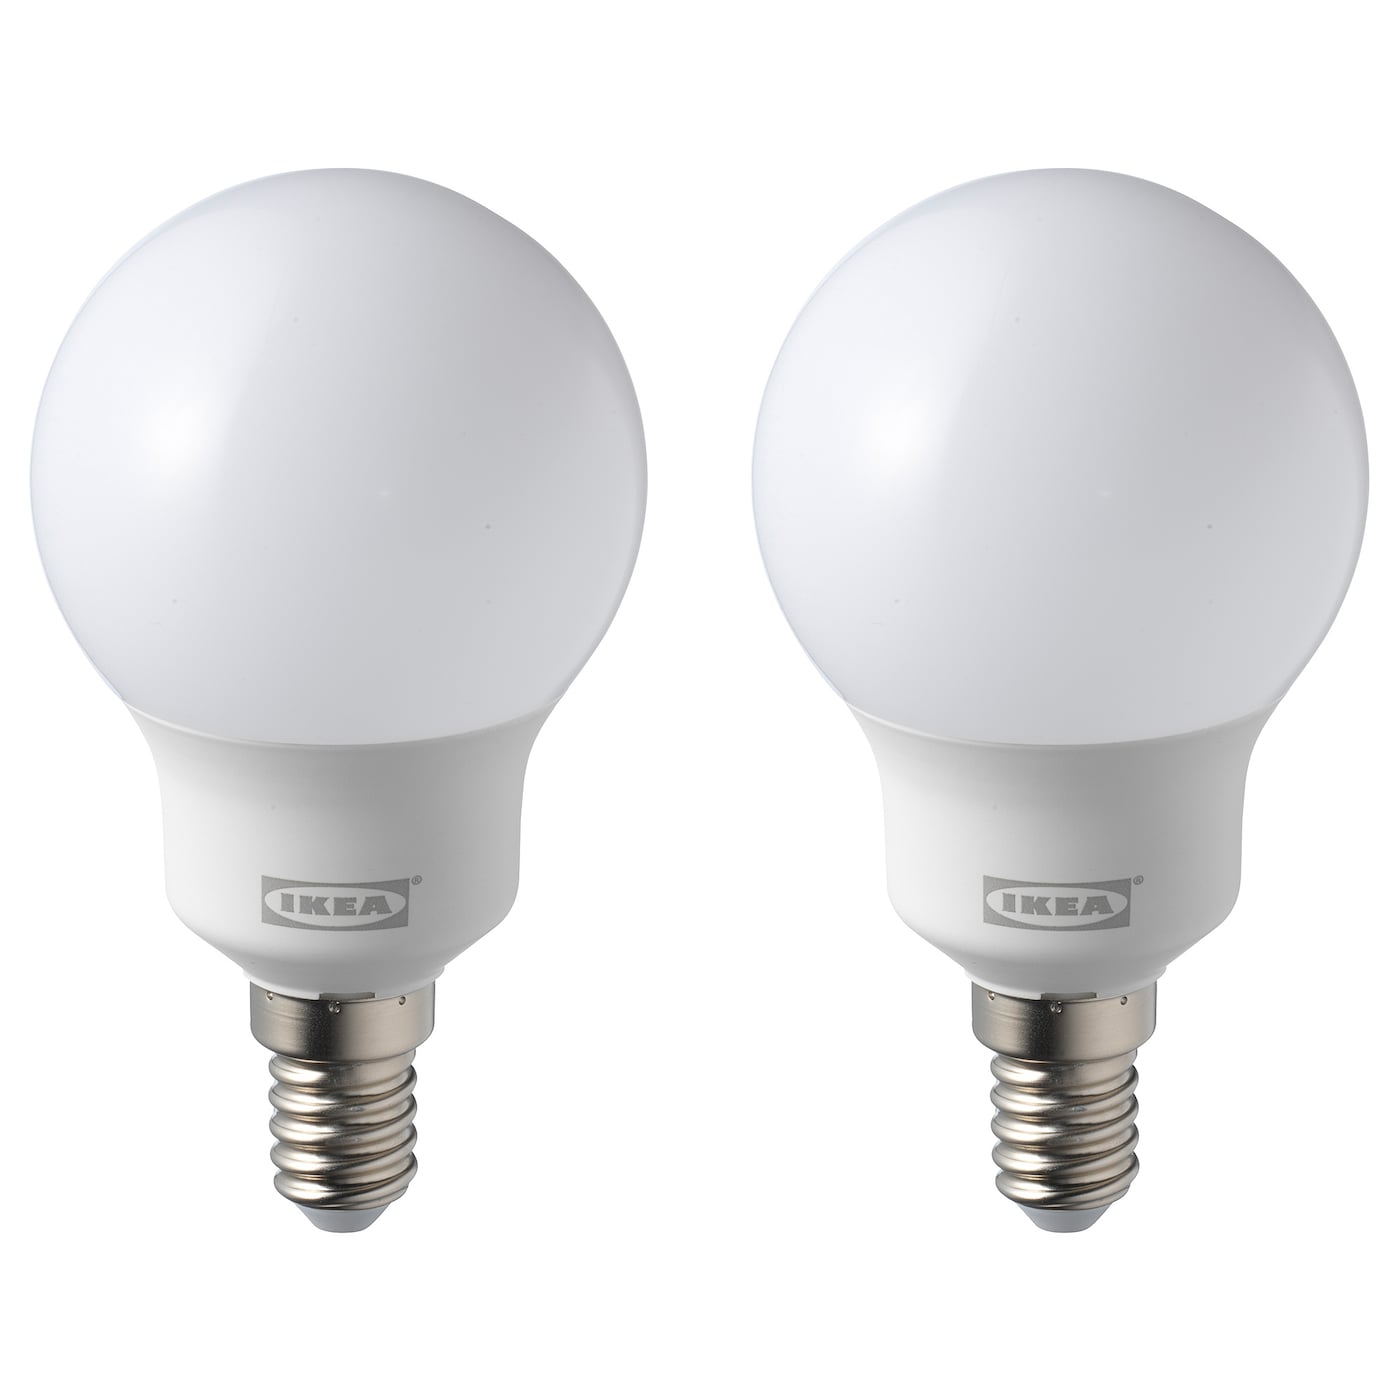 Light Bulbs Led Accessories Ikea To A Small Lightbulb With Just One Battery And Wire Ryet Bulb E14 600 Lumen